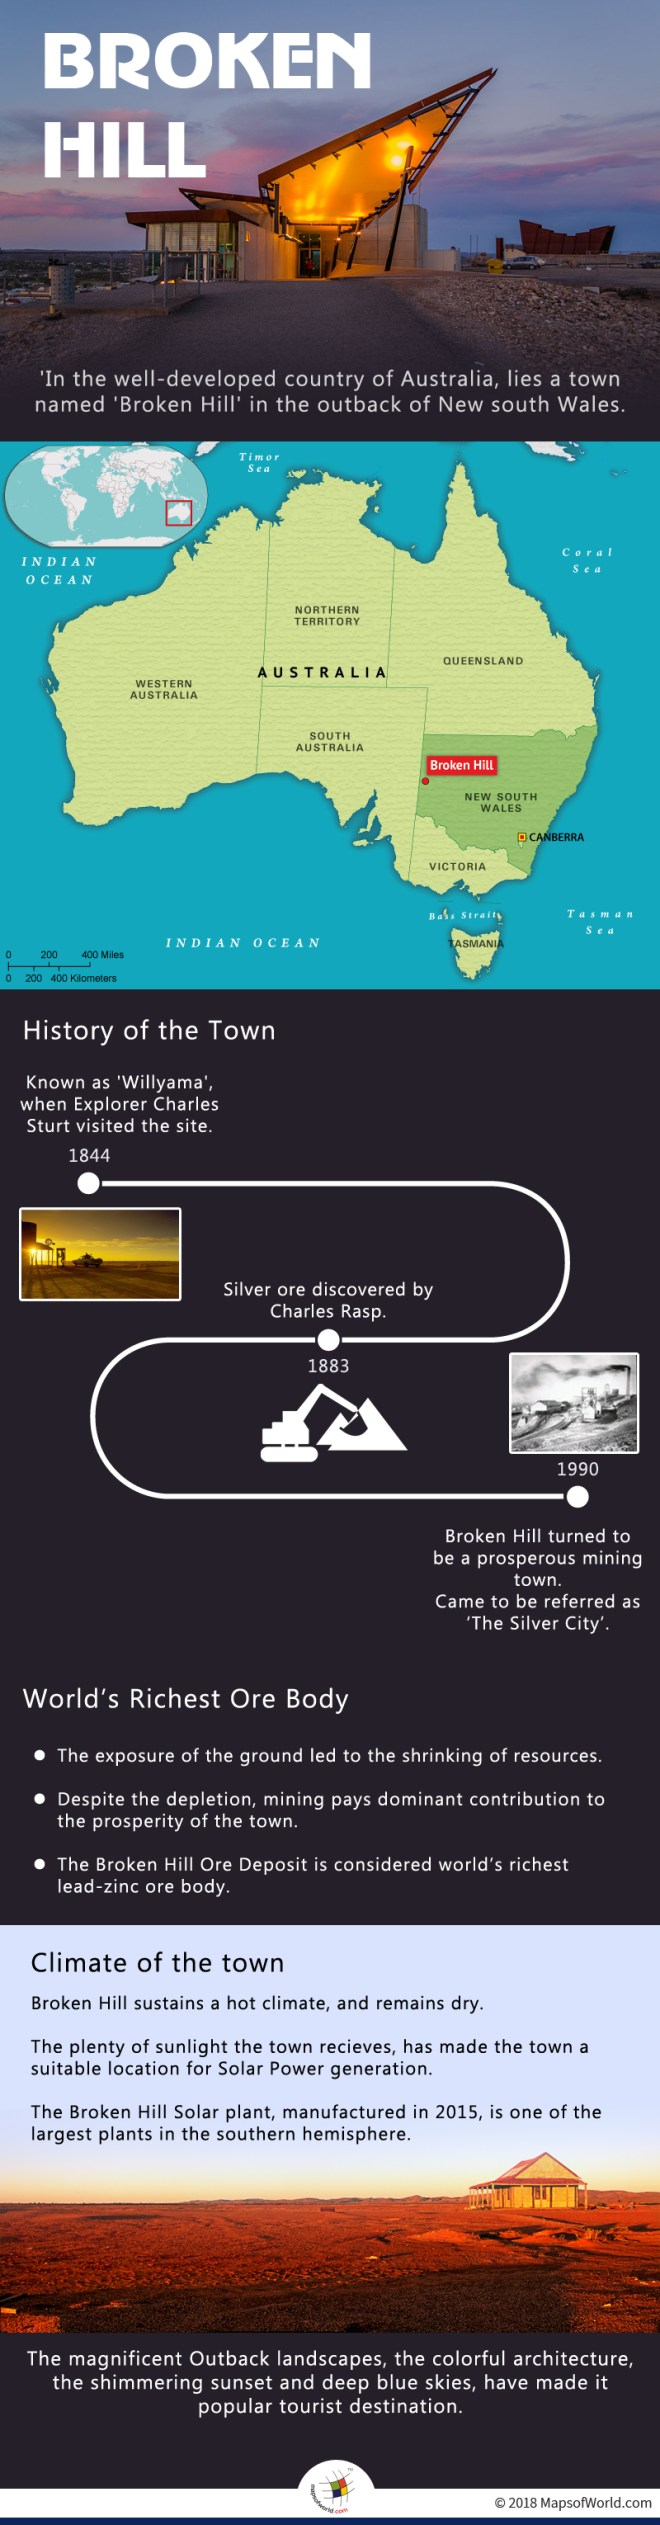 Broken Hill is The Longest Lived Mining City in The World